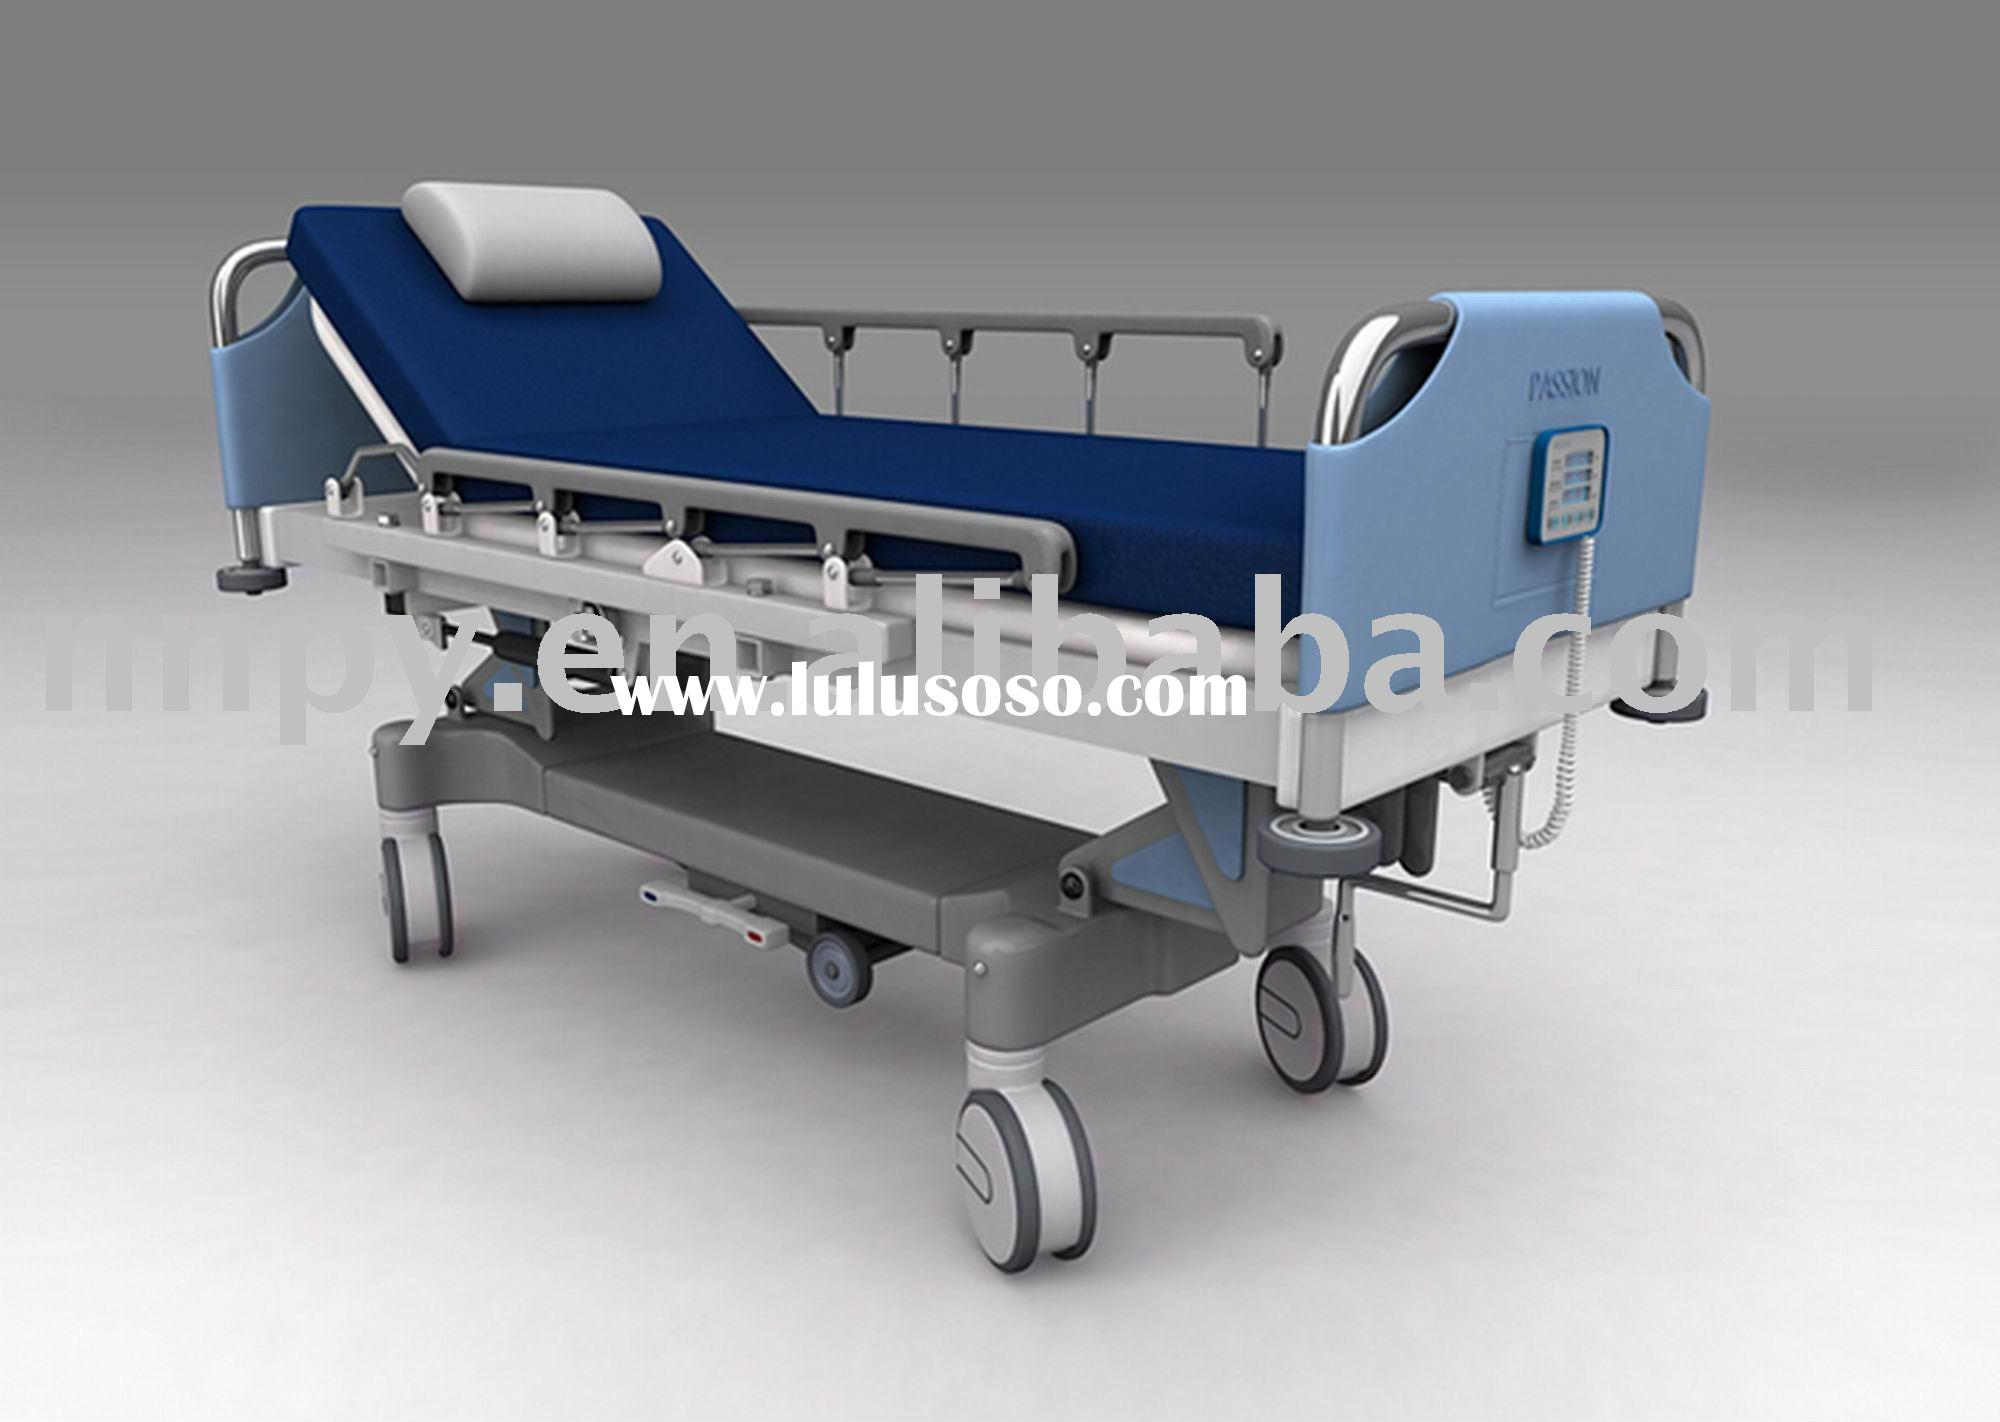 used dialysis chairs for sale golden power lift chair parts hemodialysis equipment